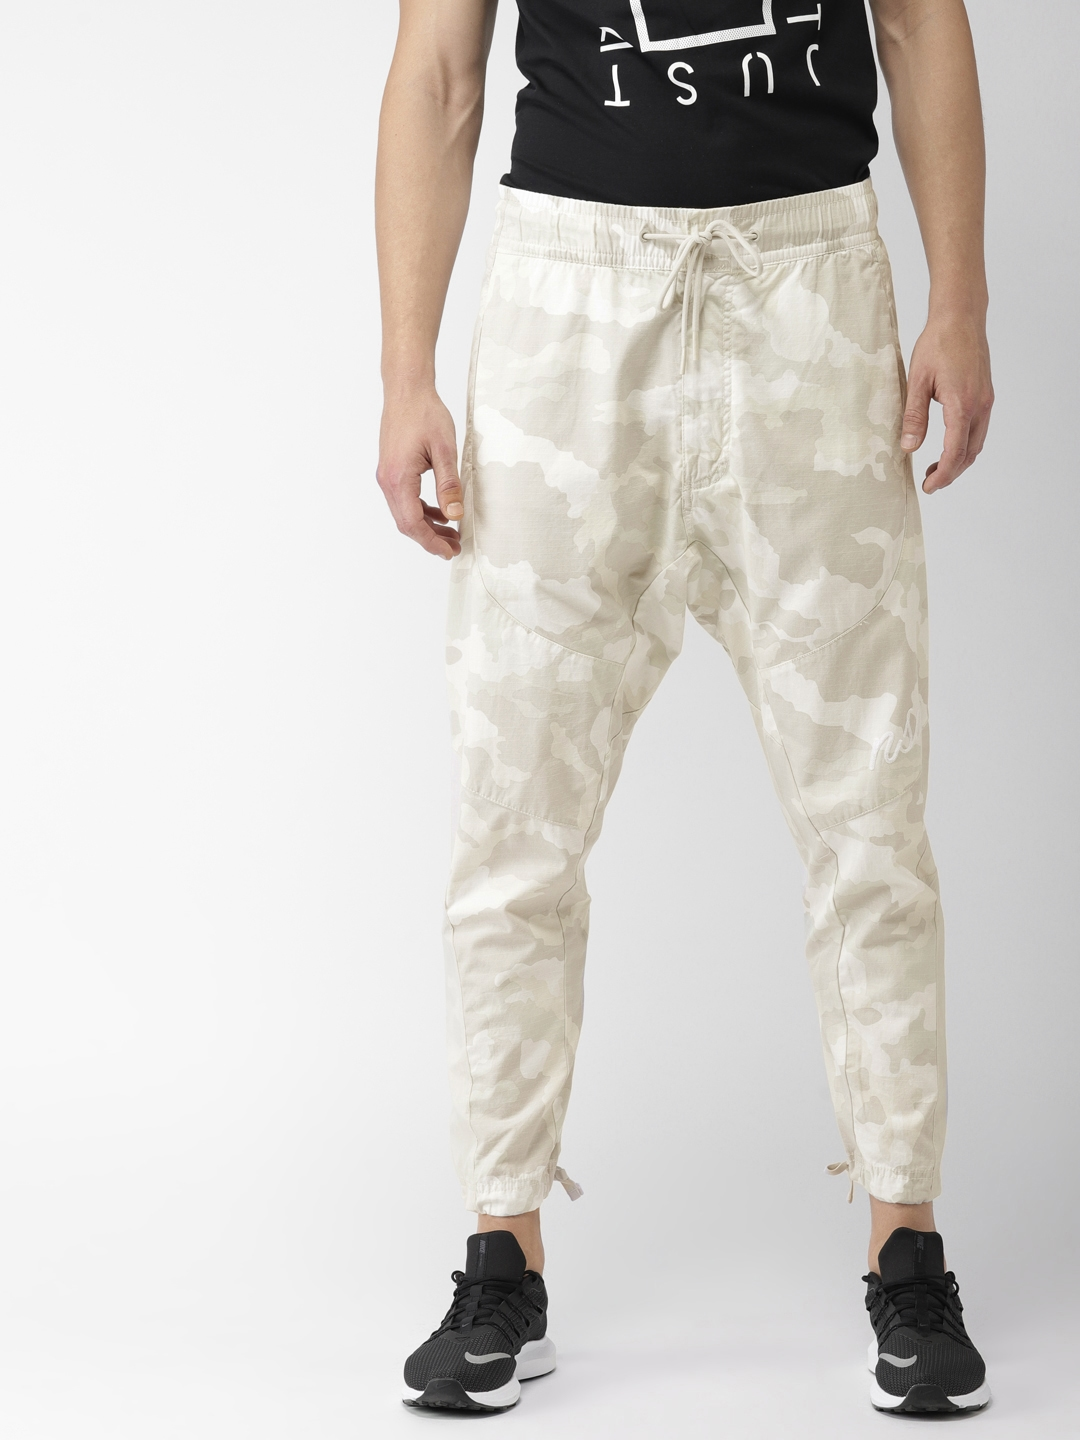 1d7aef451f308c Buy Nike Men Beige Camouflage Print NSW PANT WVN CAMO Joggers ...